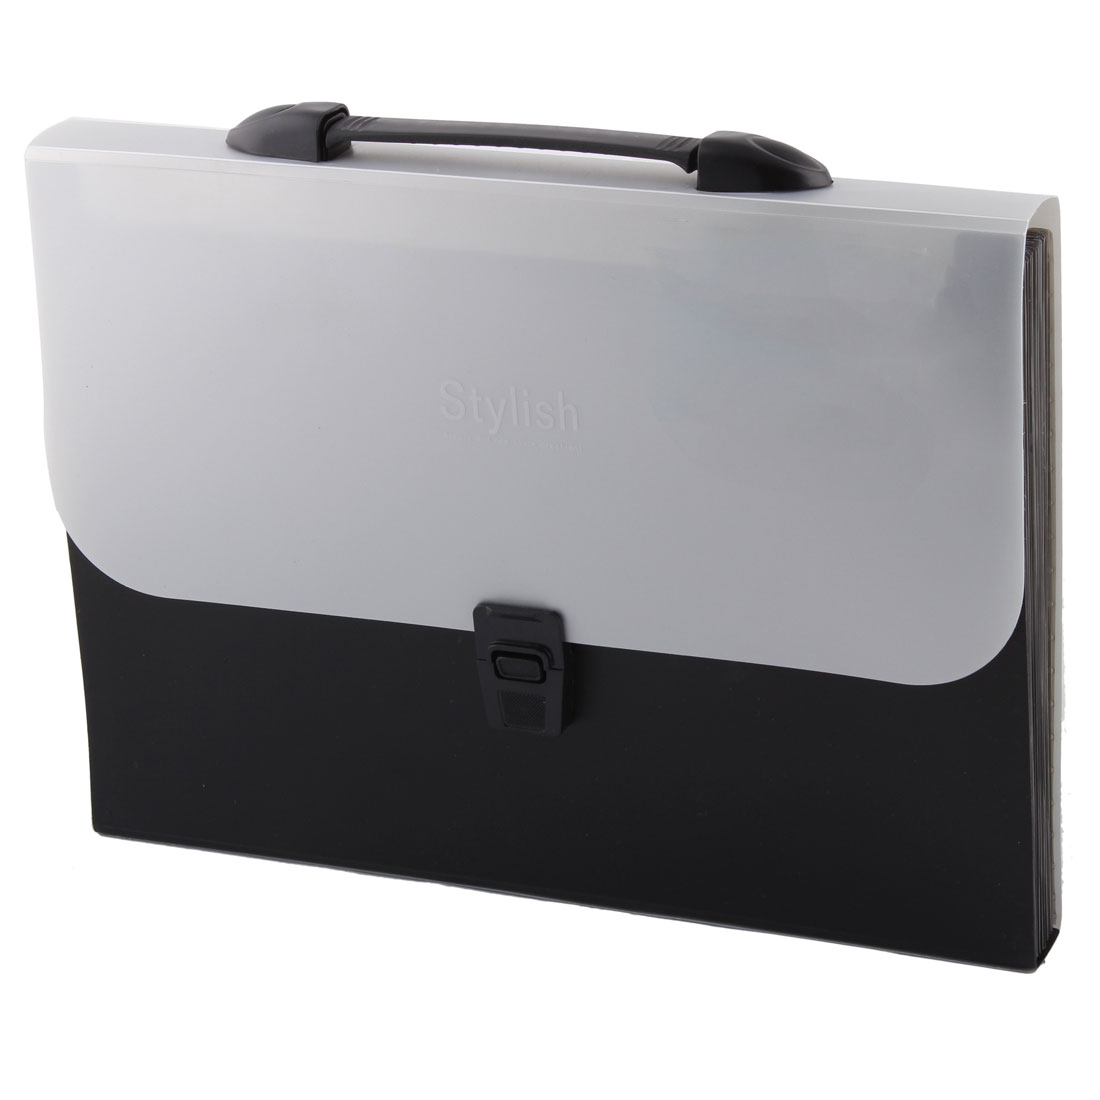 Plastic Release Buckle Office A4 Paper File Document Storage Organizer Holder Bag Gray Black